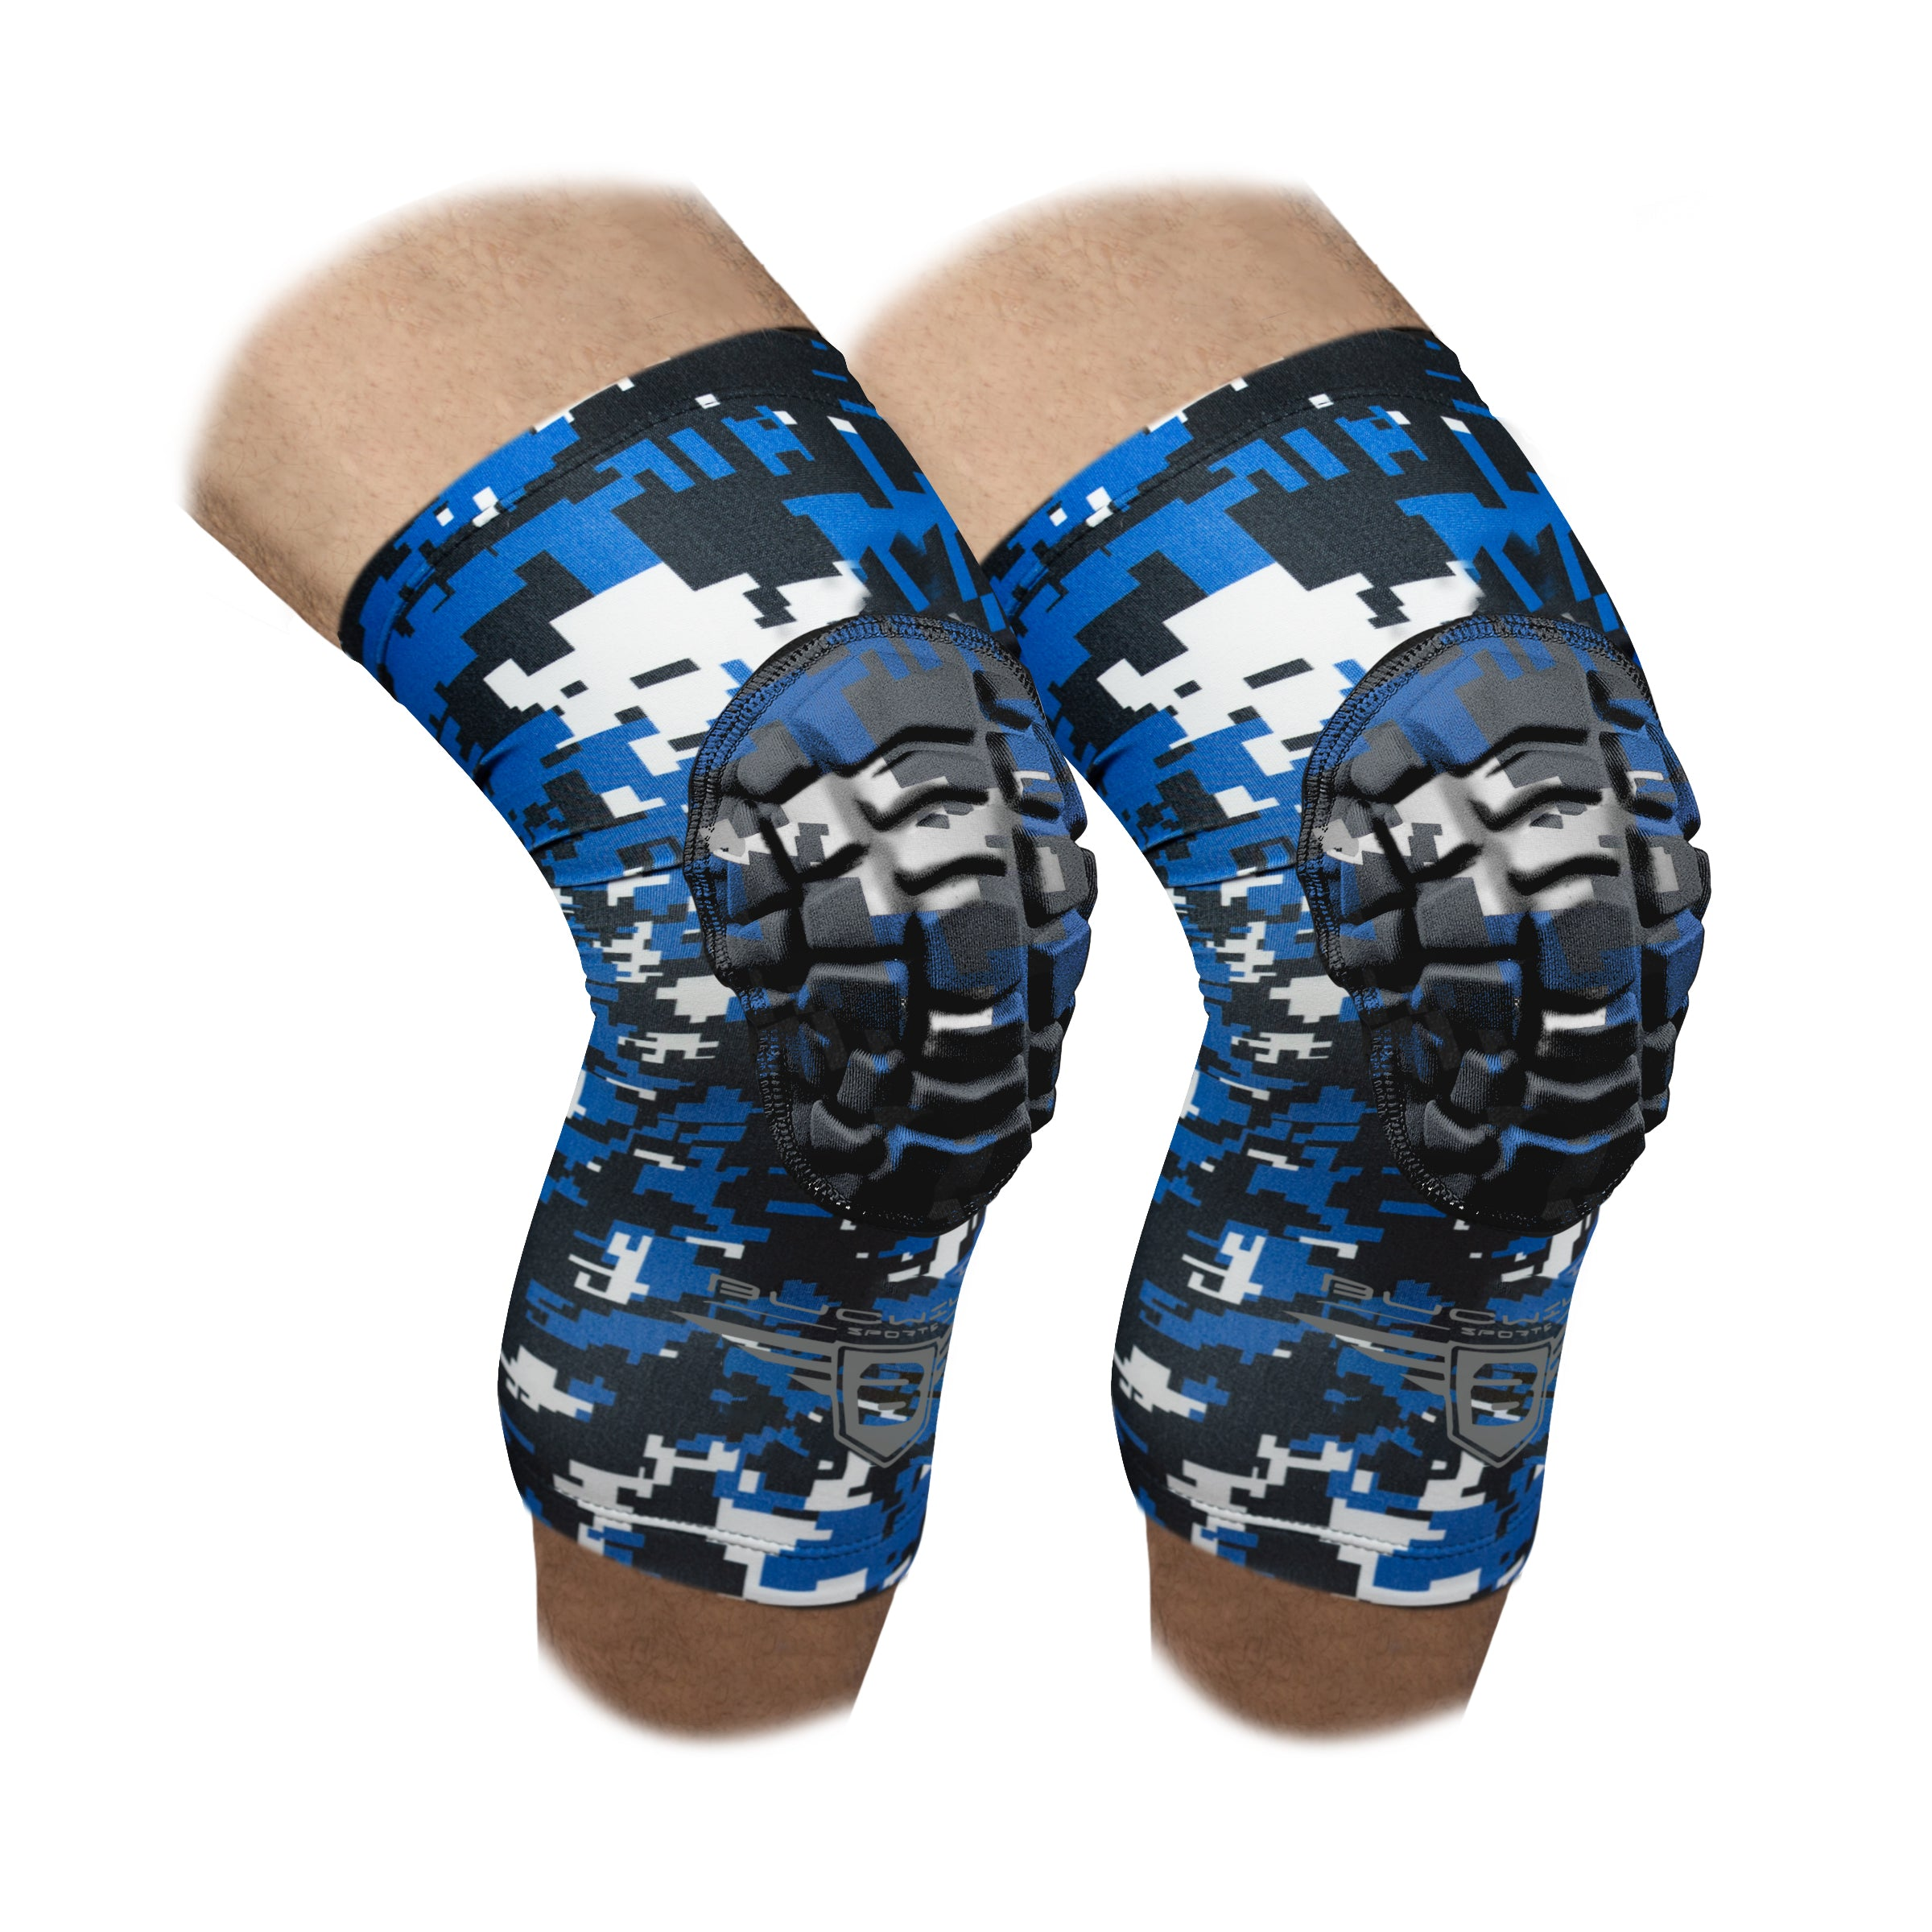 Compression Knee Pads - Royal Blue Camo